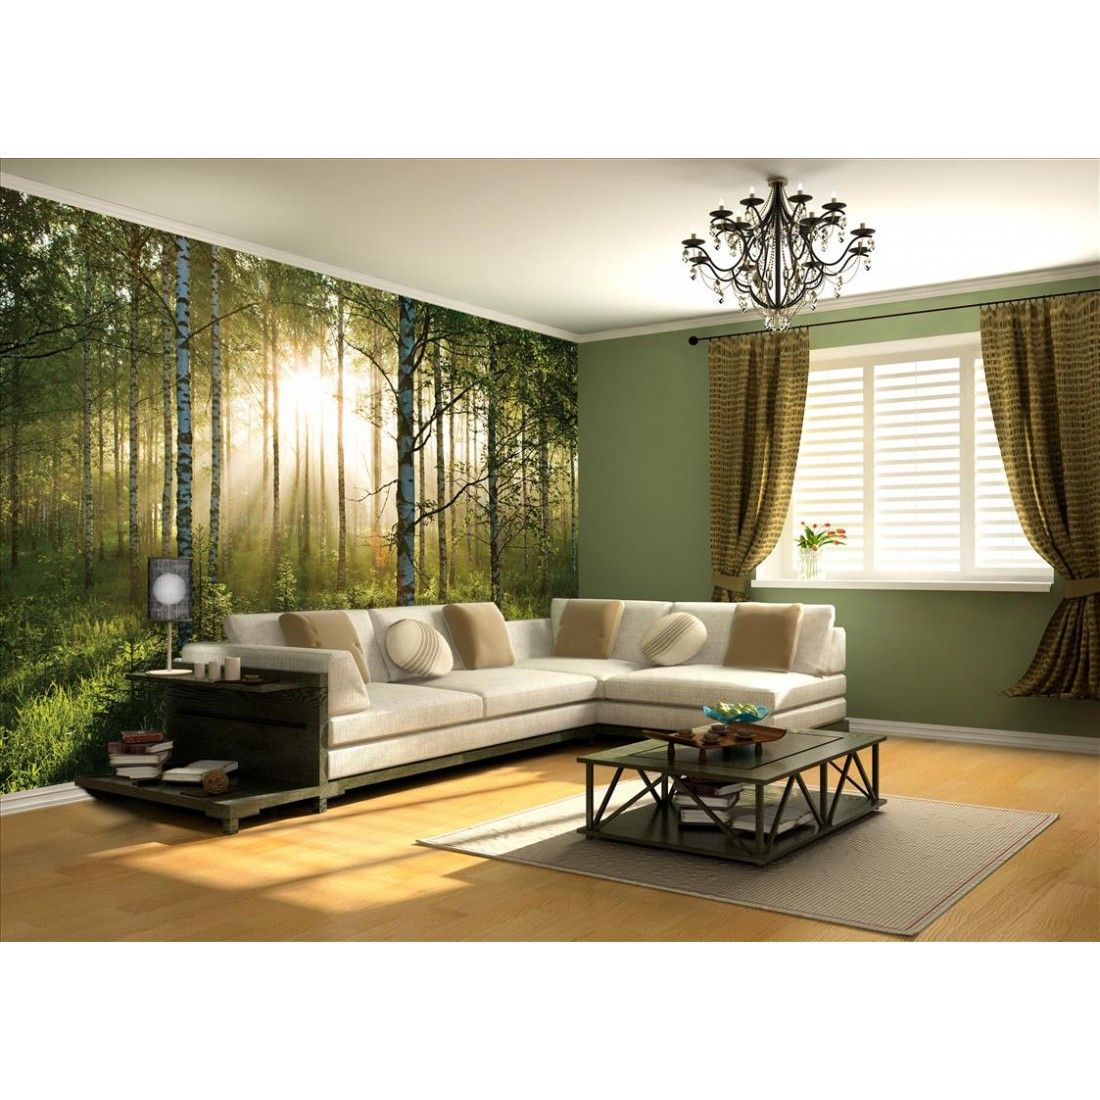 Photo Wallpaper Mural  Google Search  Chandeliers  Pinterest Captivating Living Room Wallpaper Design Ideas Review